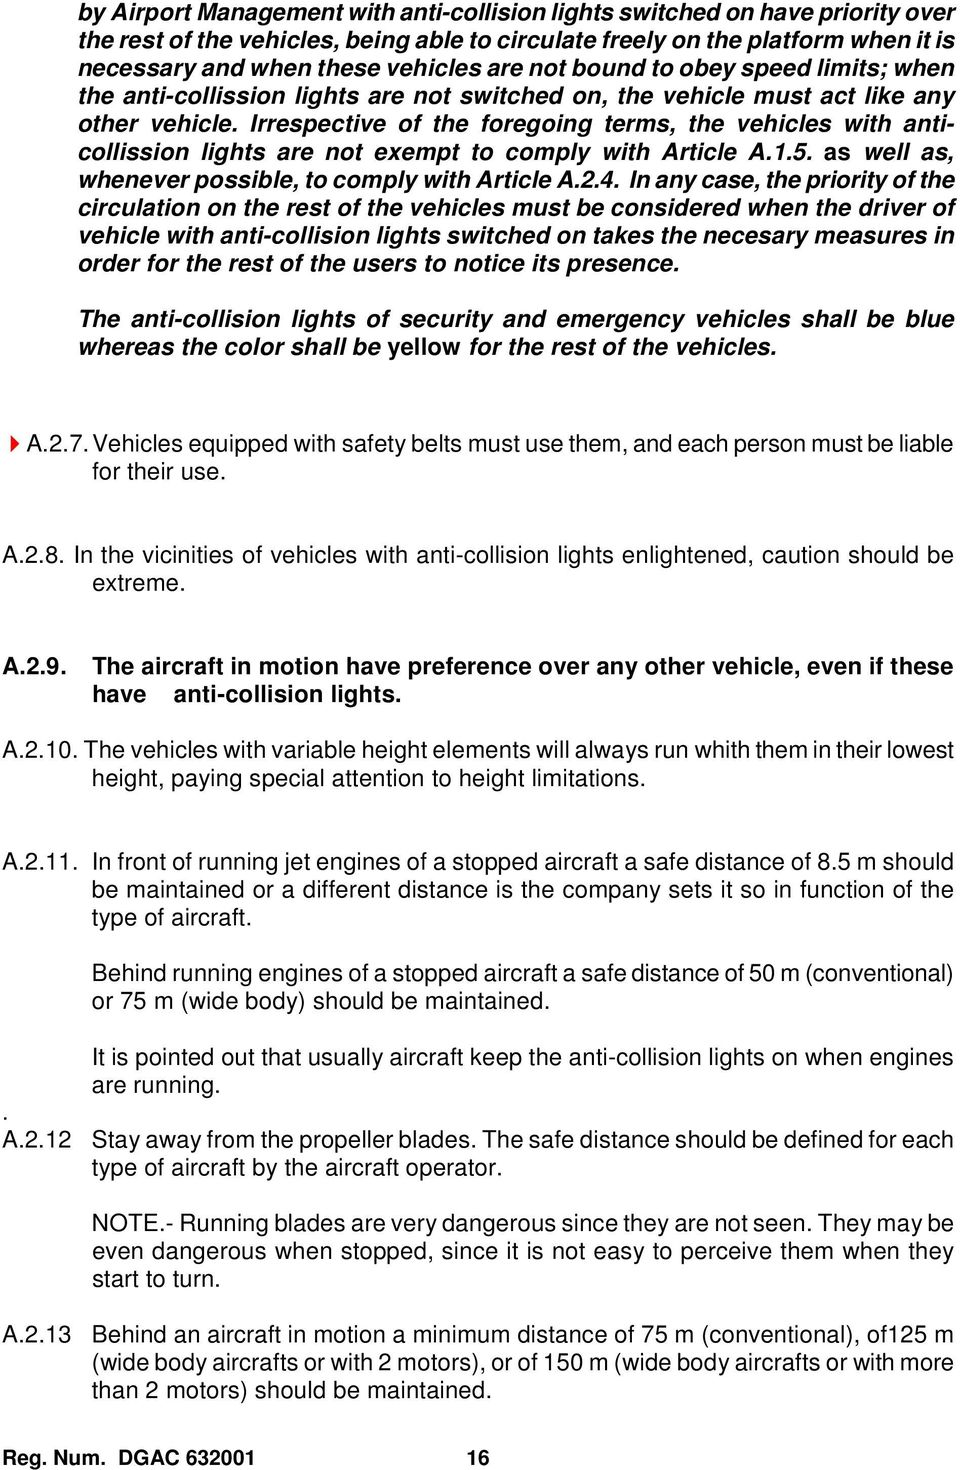 Irrespective of the foregoing terms, the vehicles with anticollission lights are not exempt to comply with Article A.1.5. as well as, whenever possible, to comply with Article A.2.4.